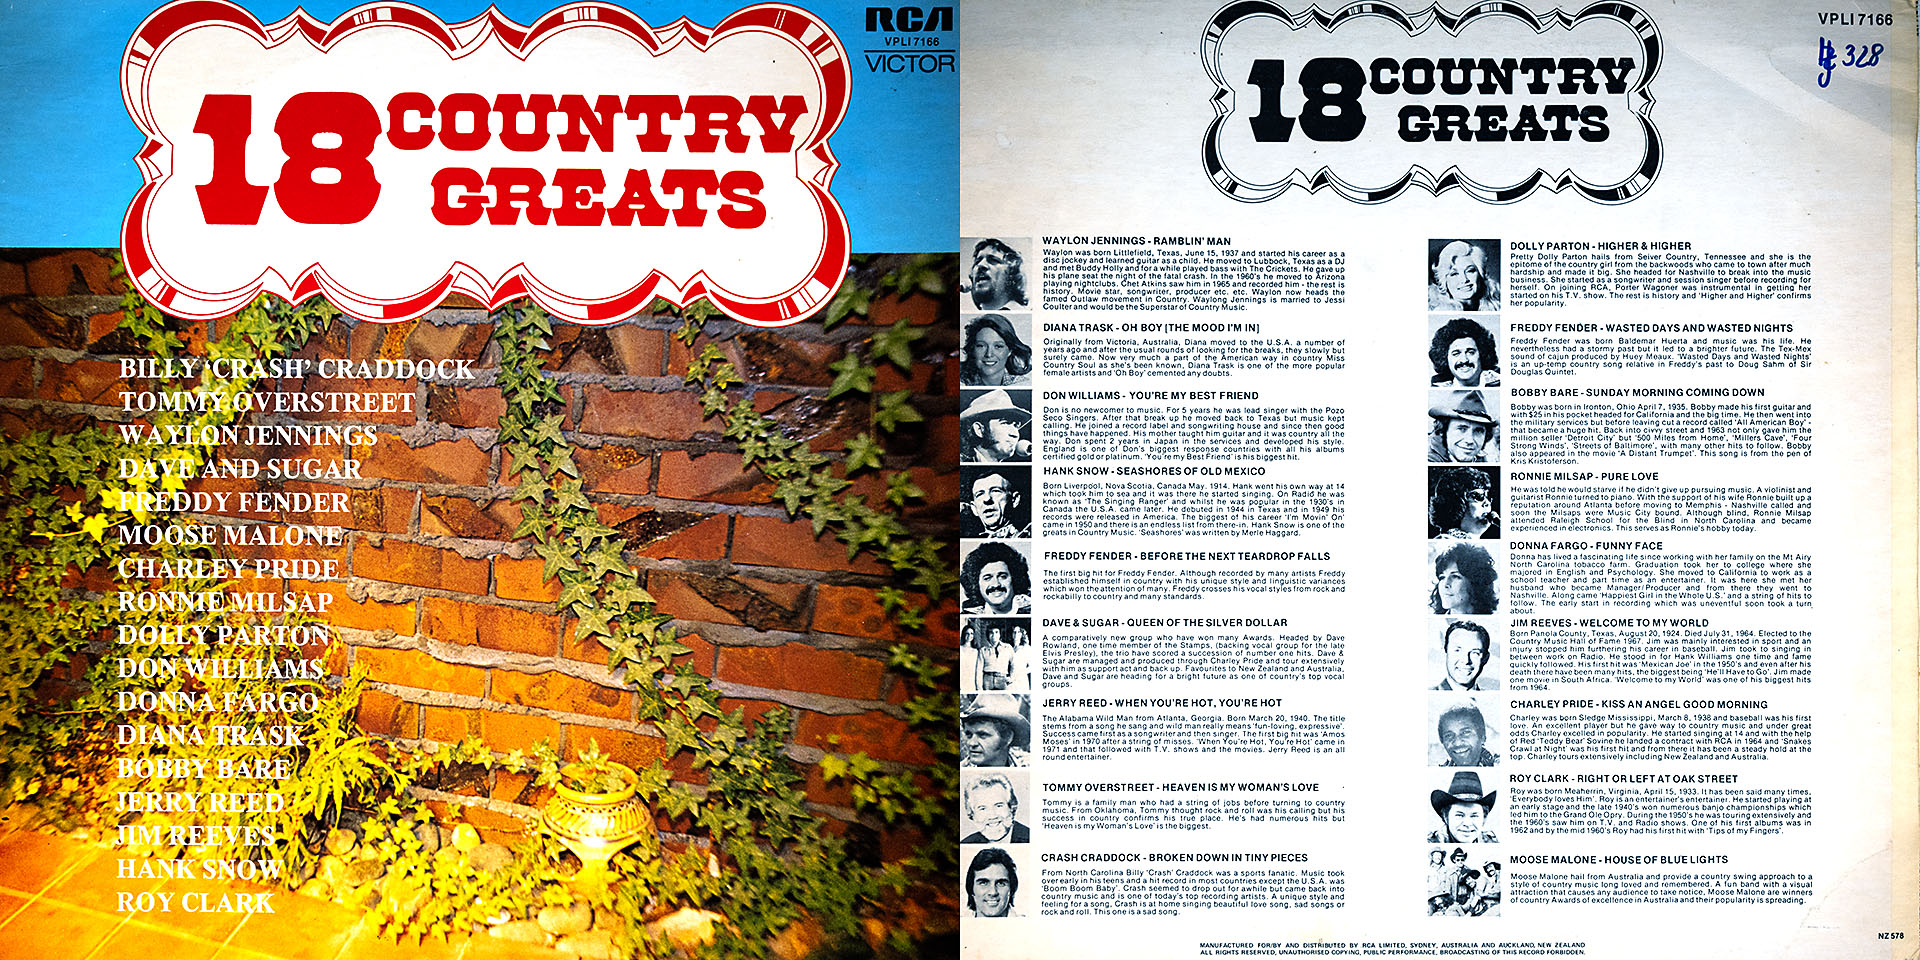 18 Country Greats - Don Williams / Dolly Parton / Roy Clark u. v. a. m.